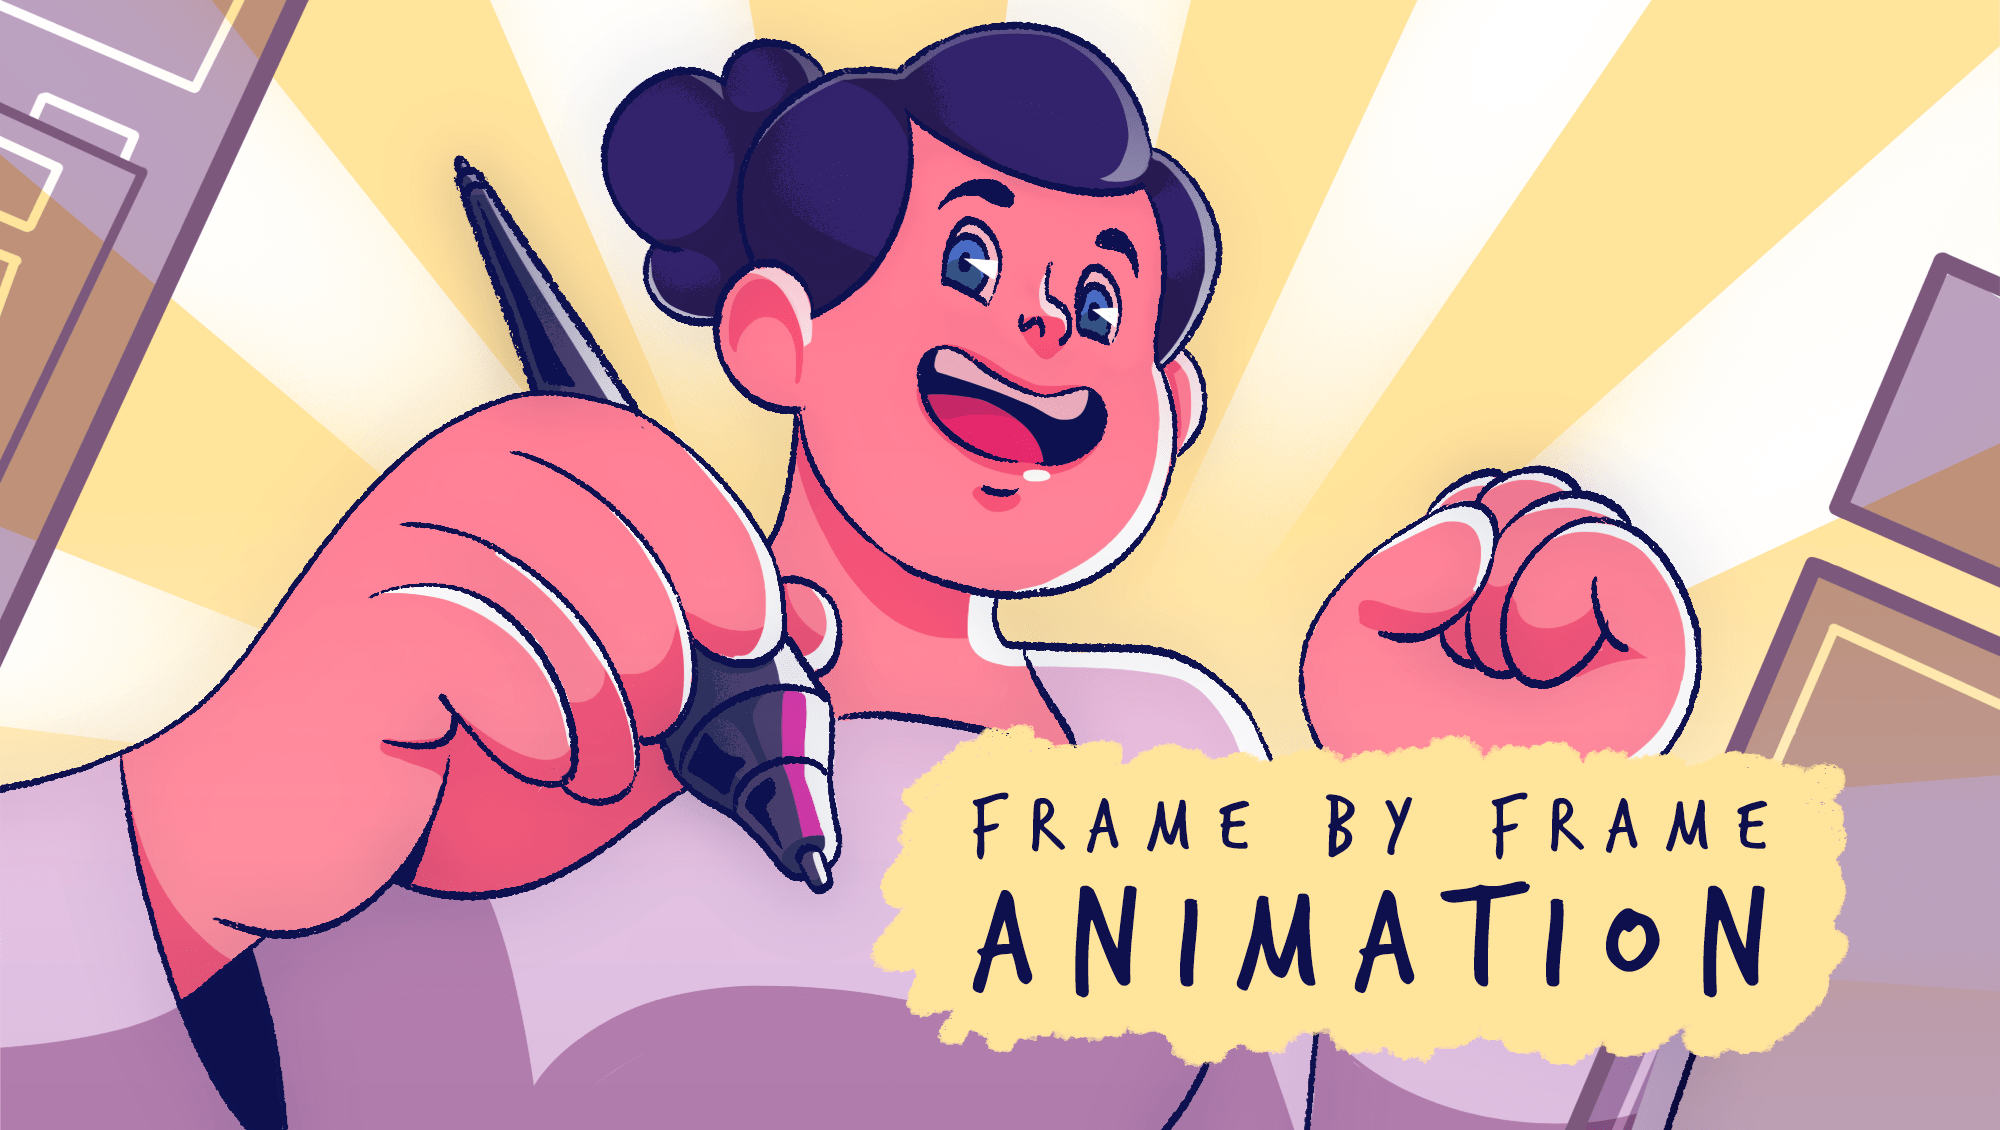 AeJuice - Frame by Frame Animation